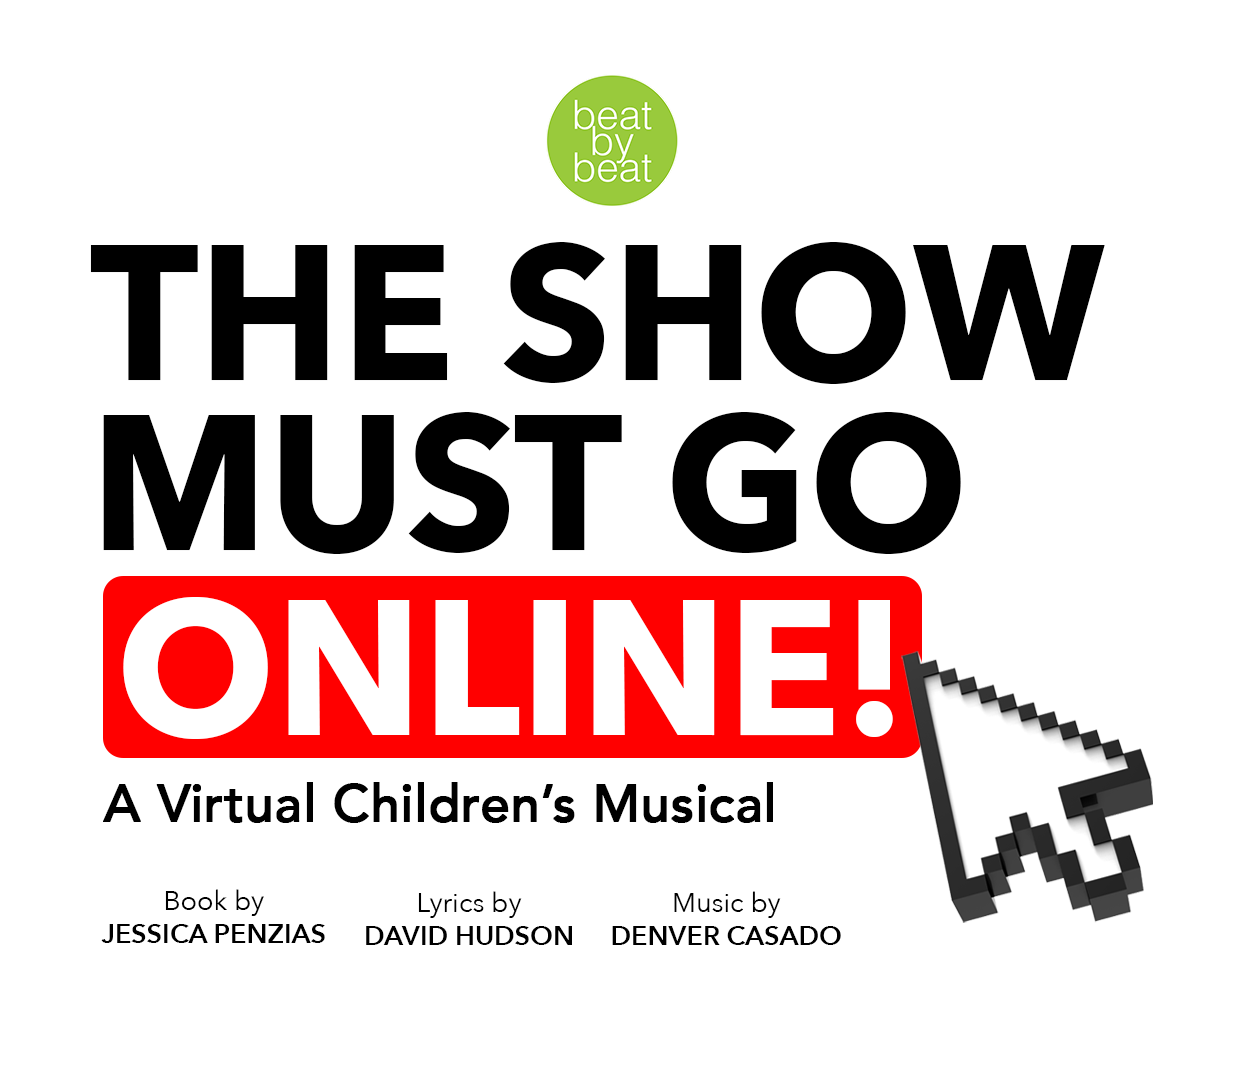 The Show Must Go Online!